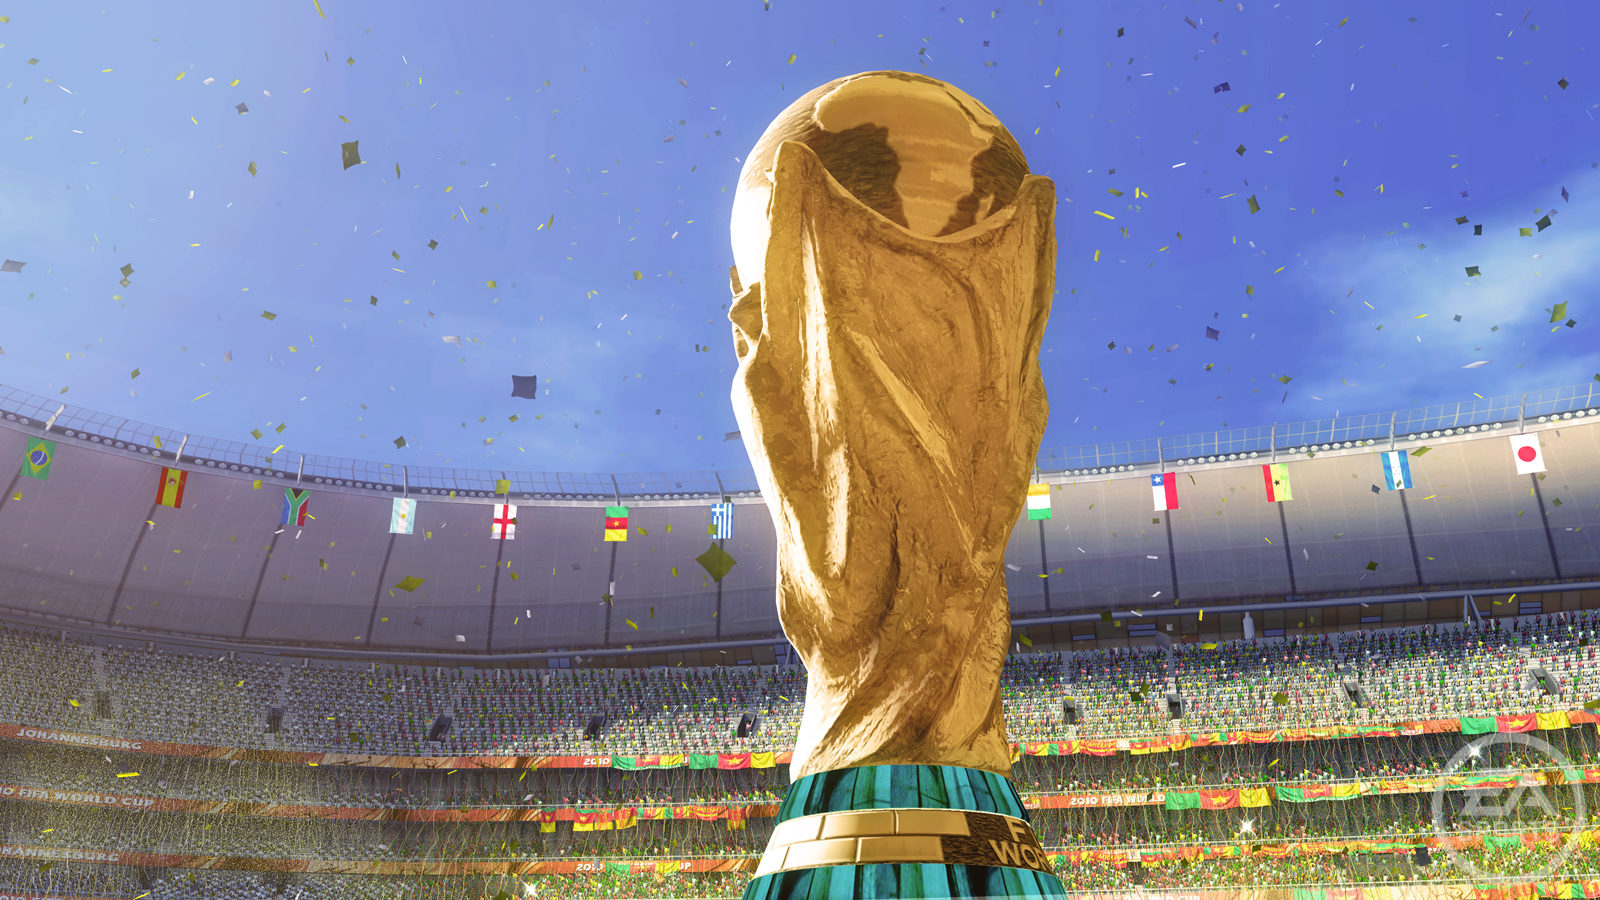 2010 FIFA World Cup: South Africa - 2010 FIFA World Cup: South Africa